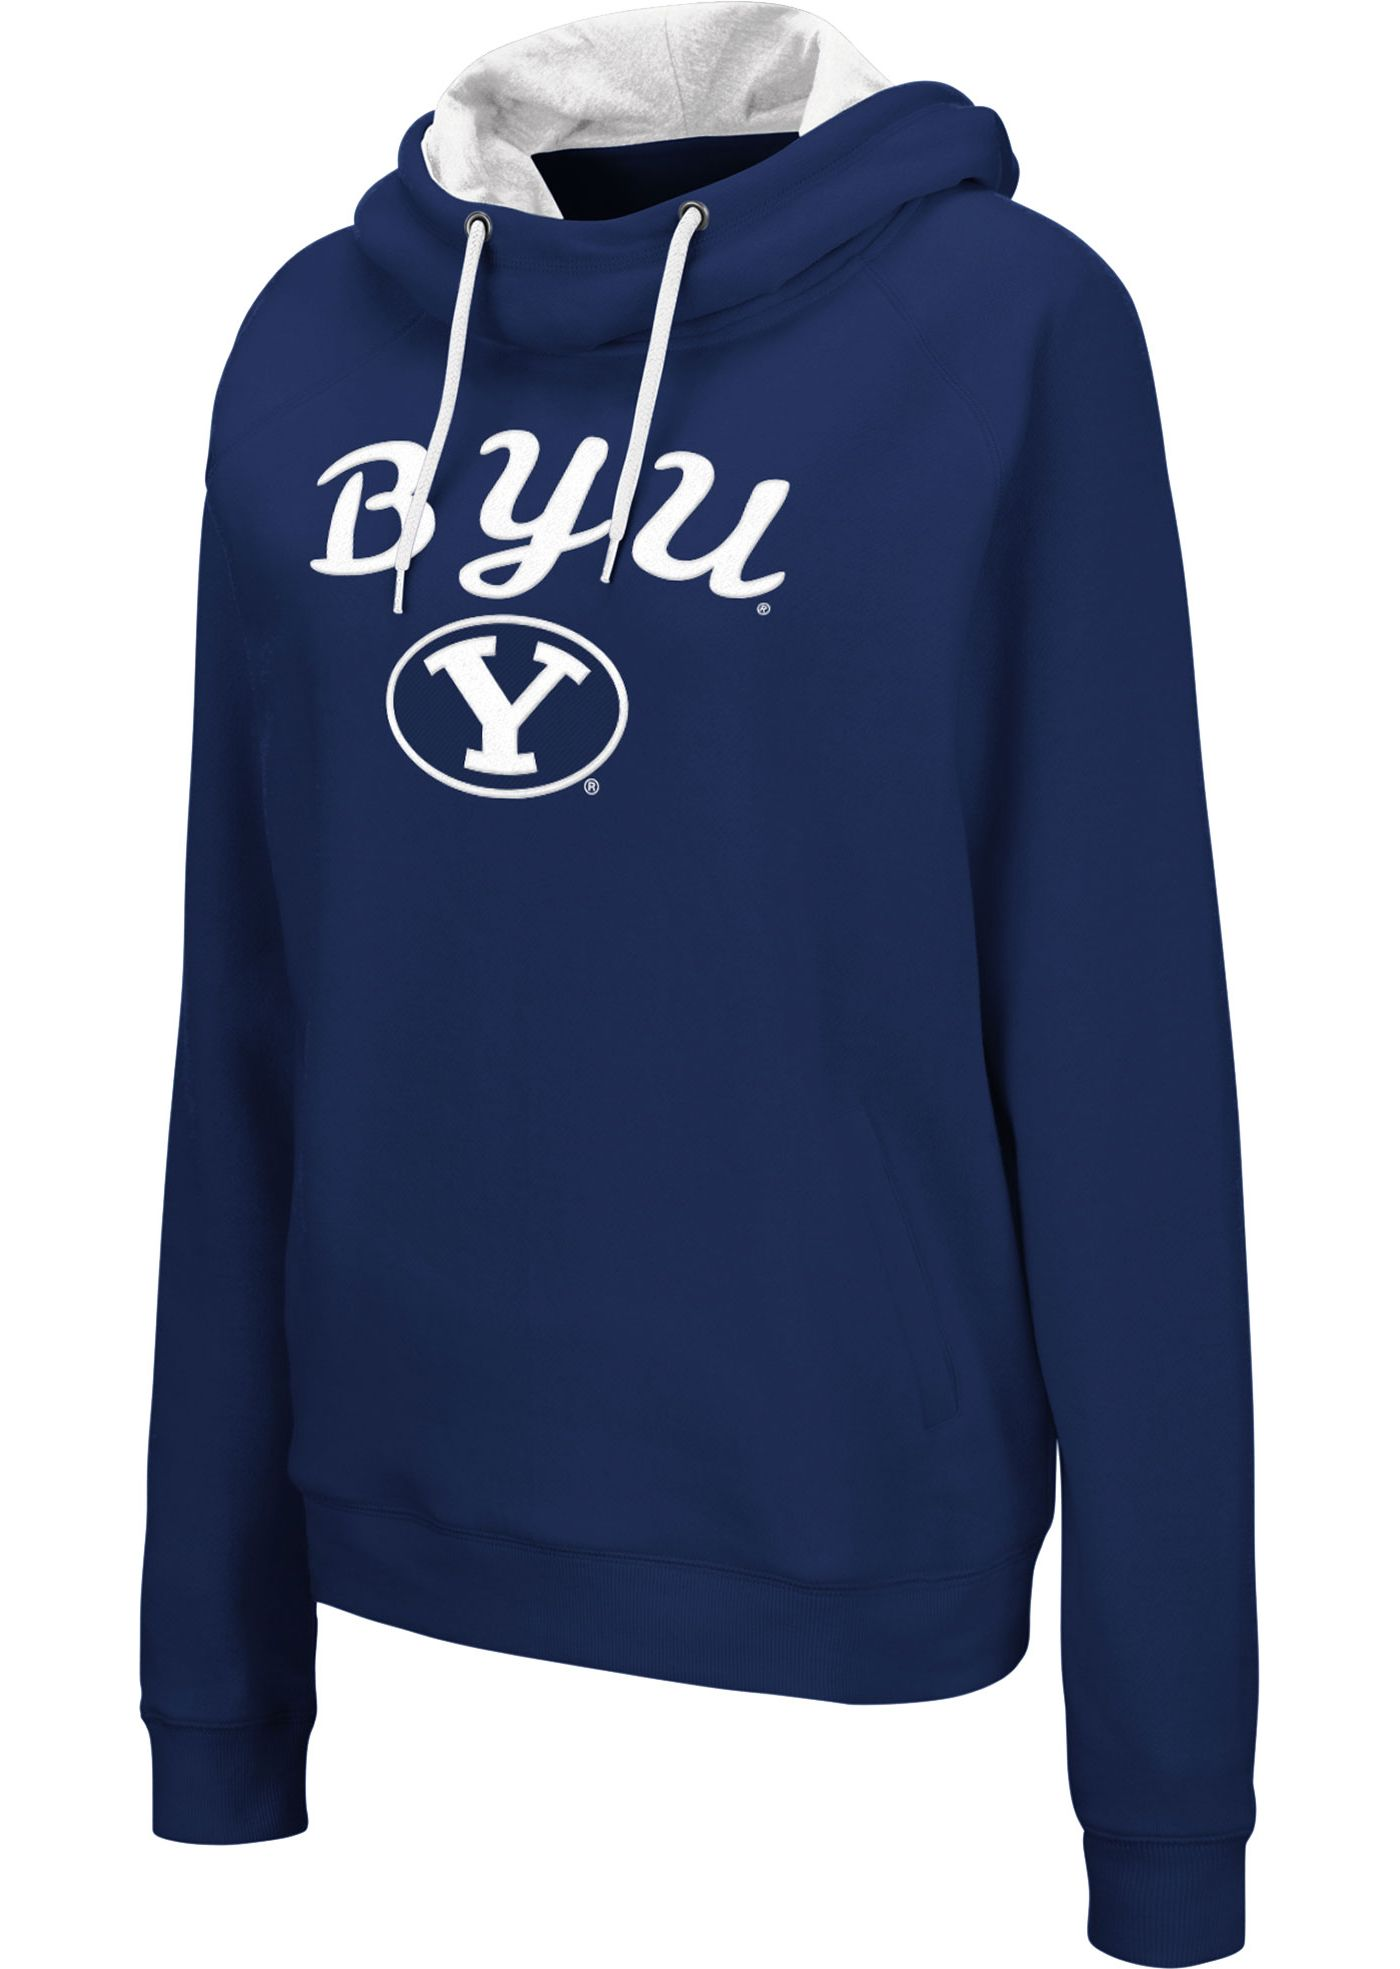 Colosseum Women's BYU Cougars Blue Louise Pullover Sweatshirt